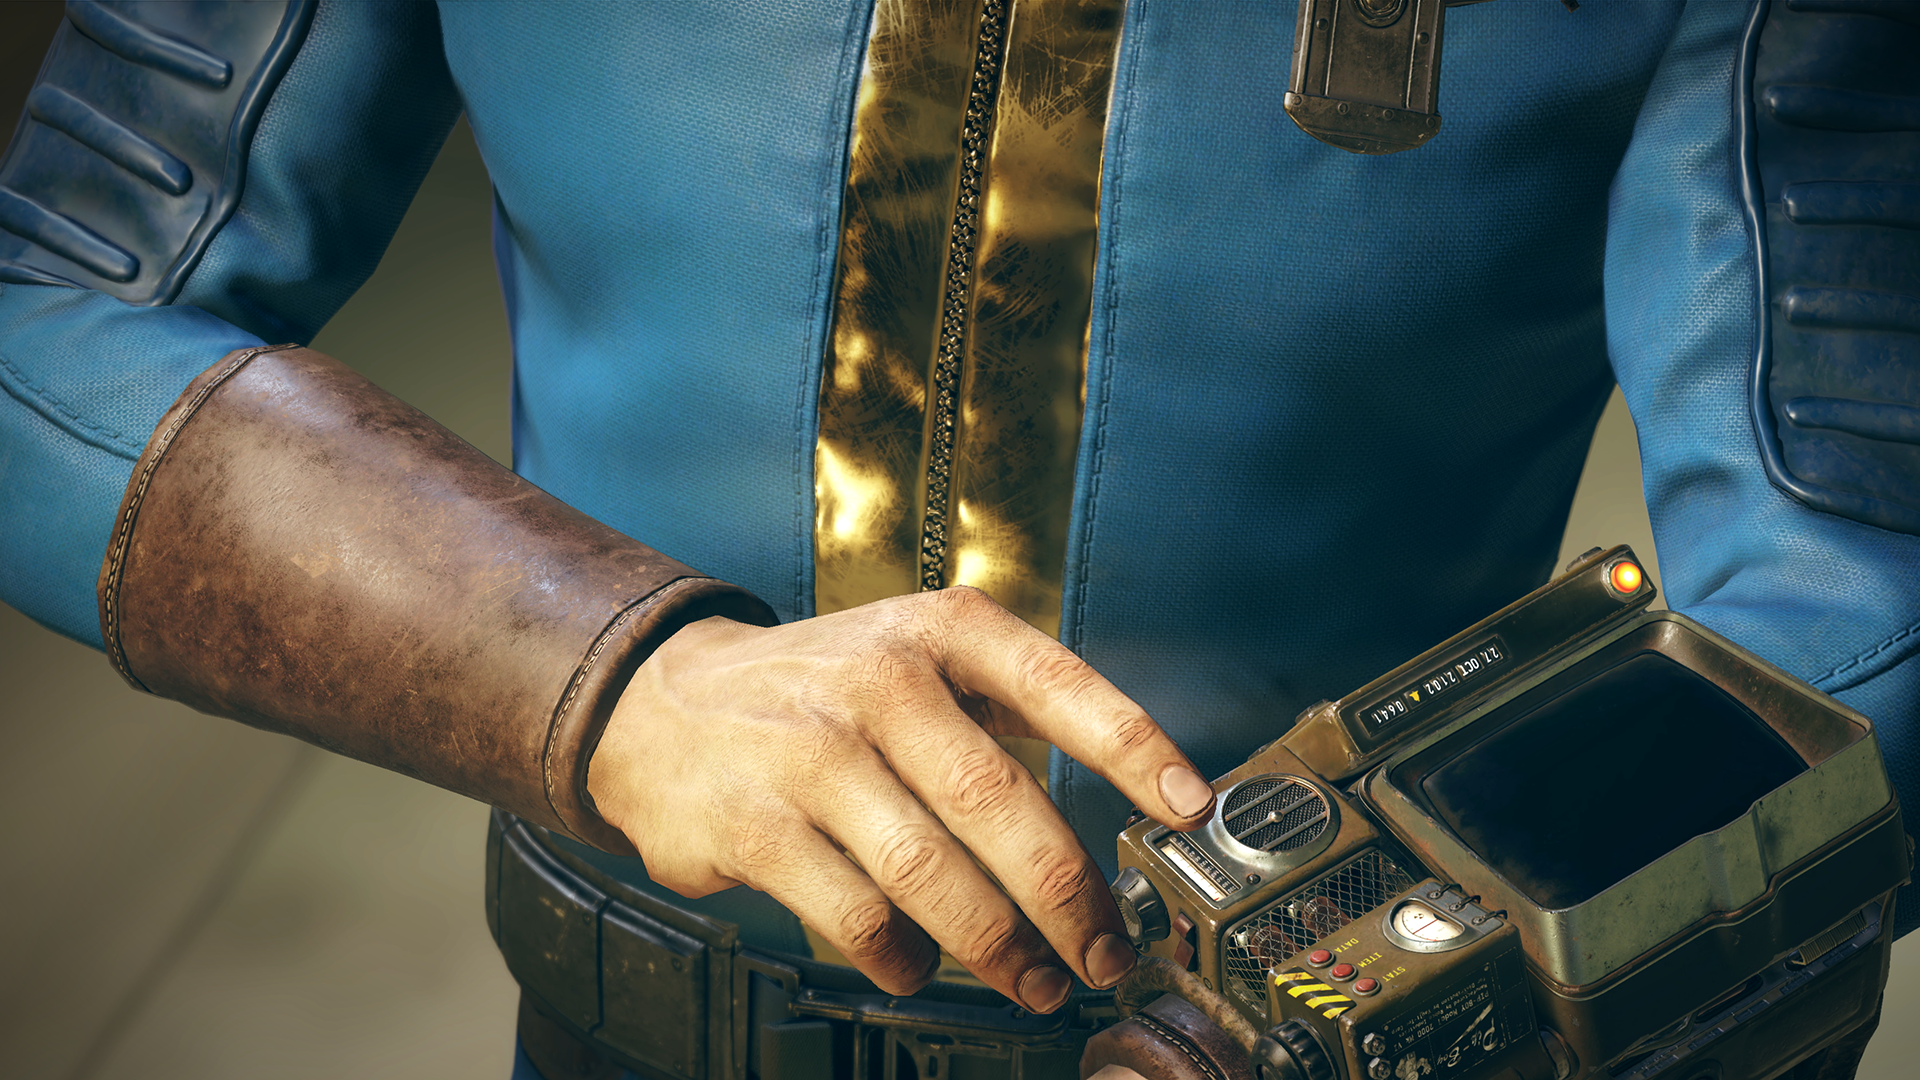 Fallout 76 is now capped at 63fps, and FOV is locked too